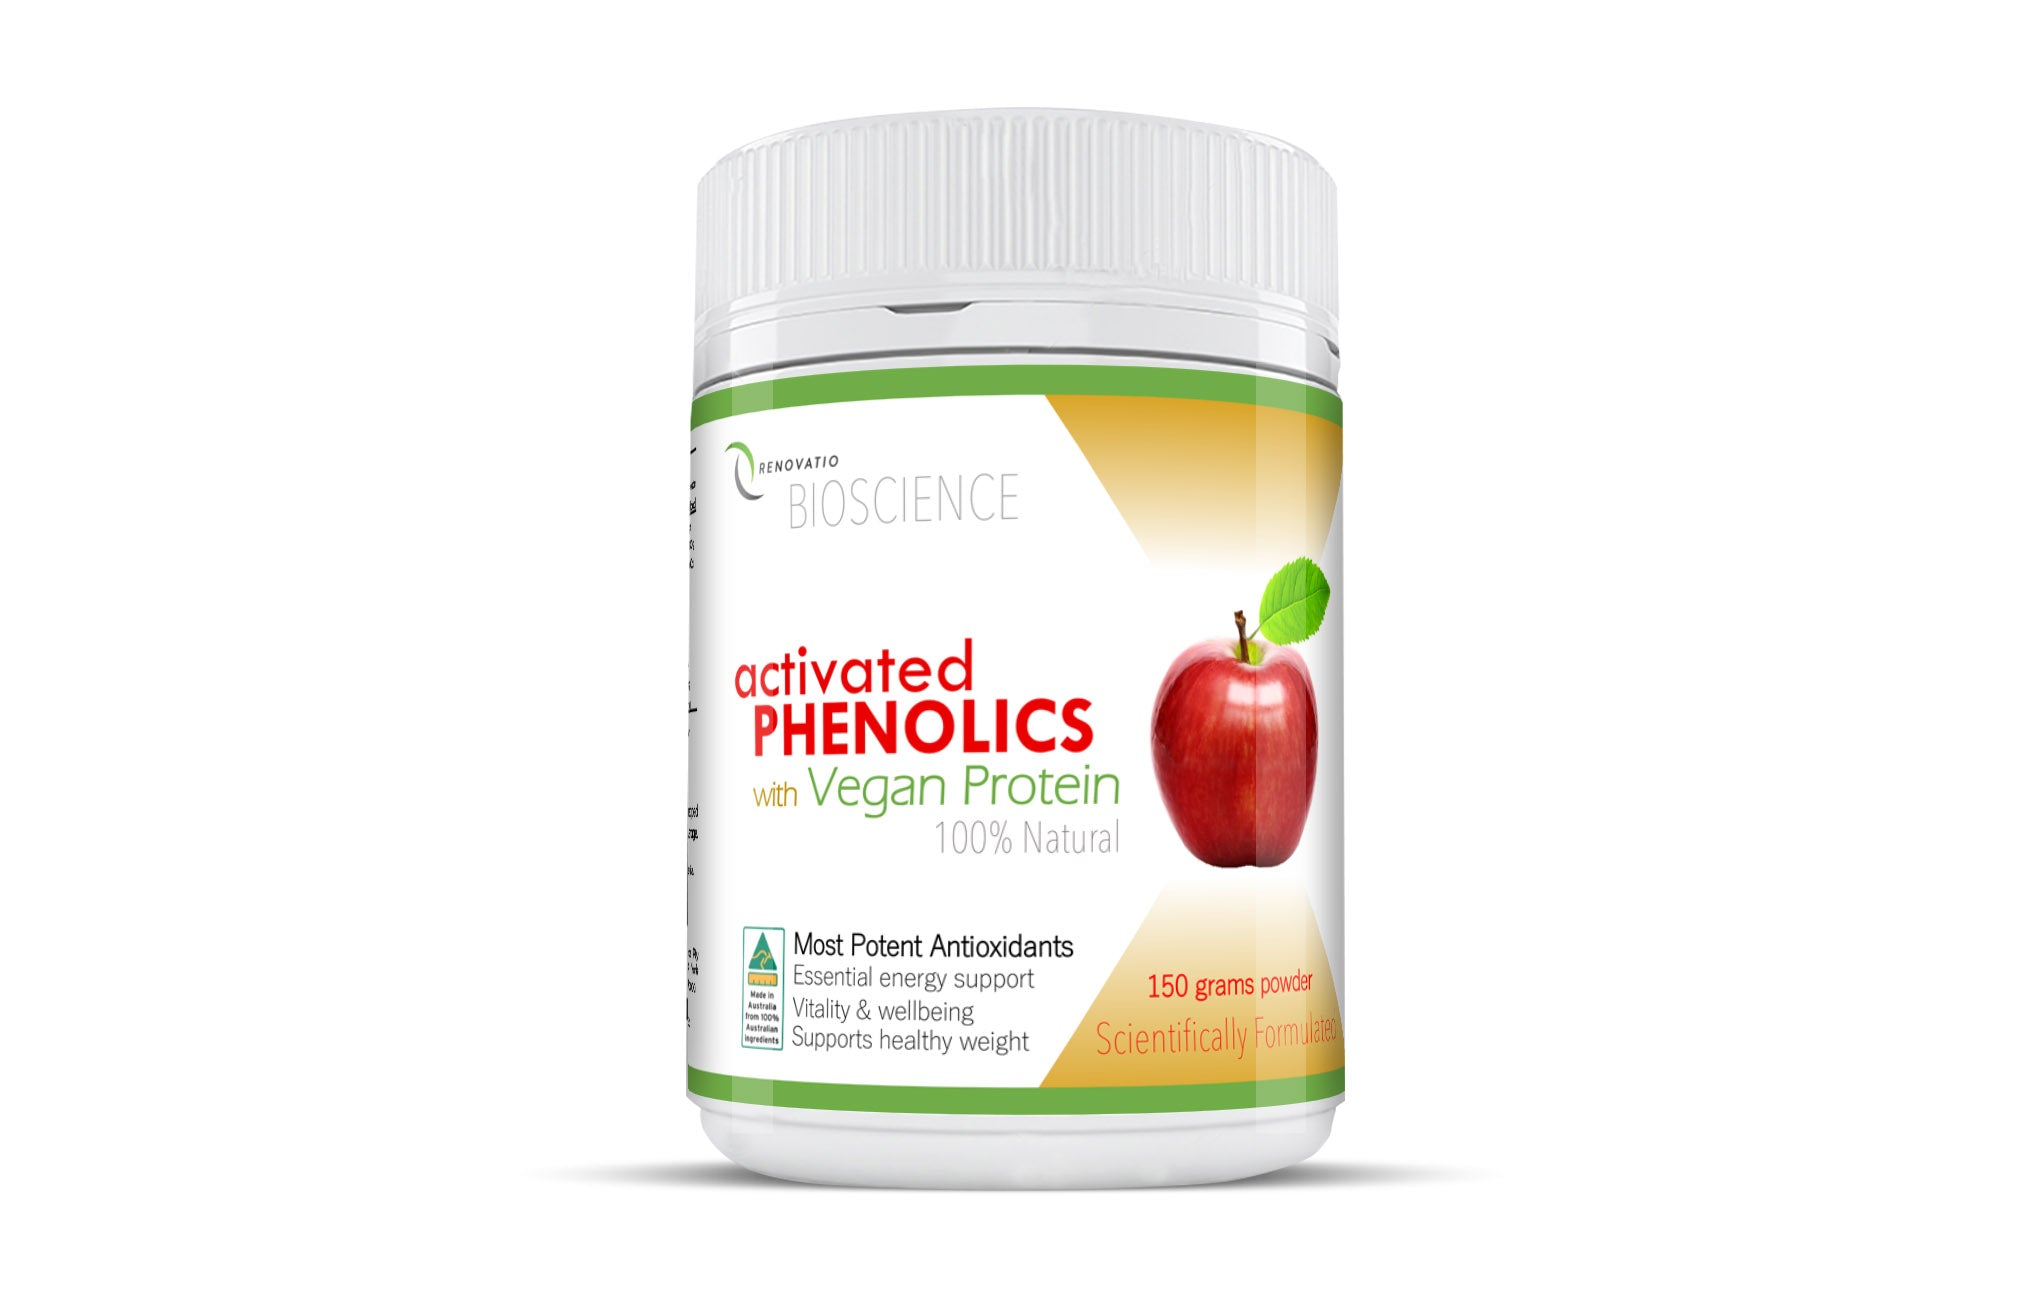 --Activated Phenolics with Vegan Protein--